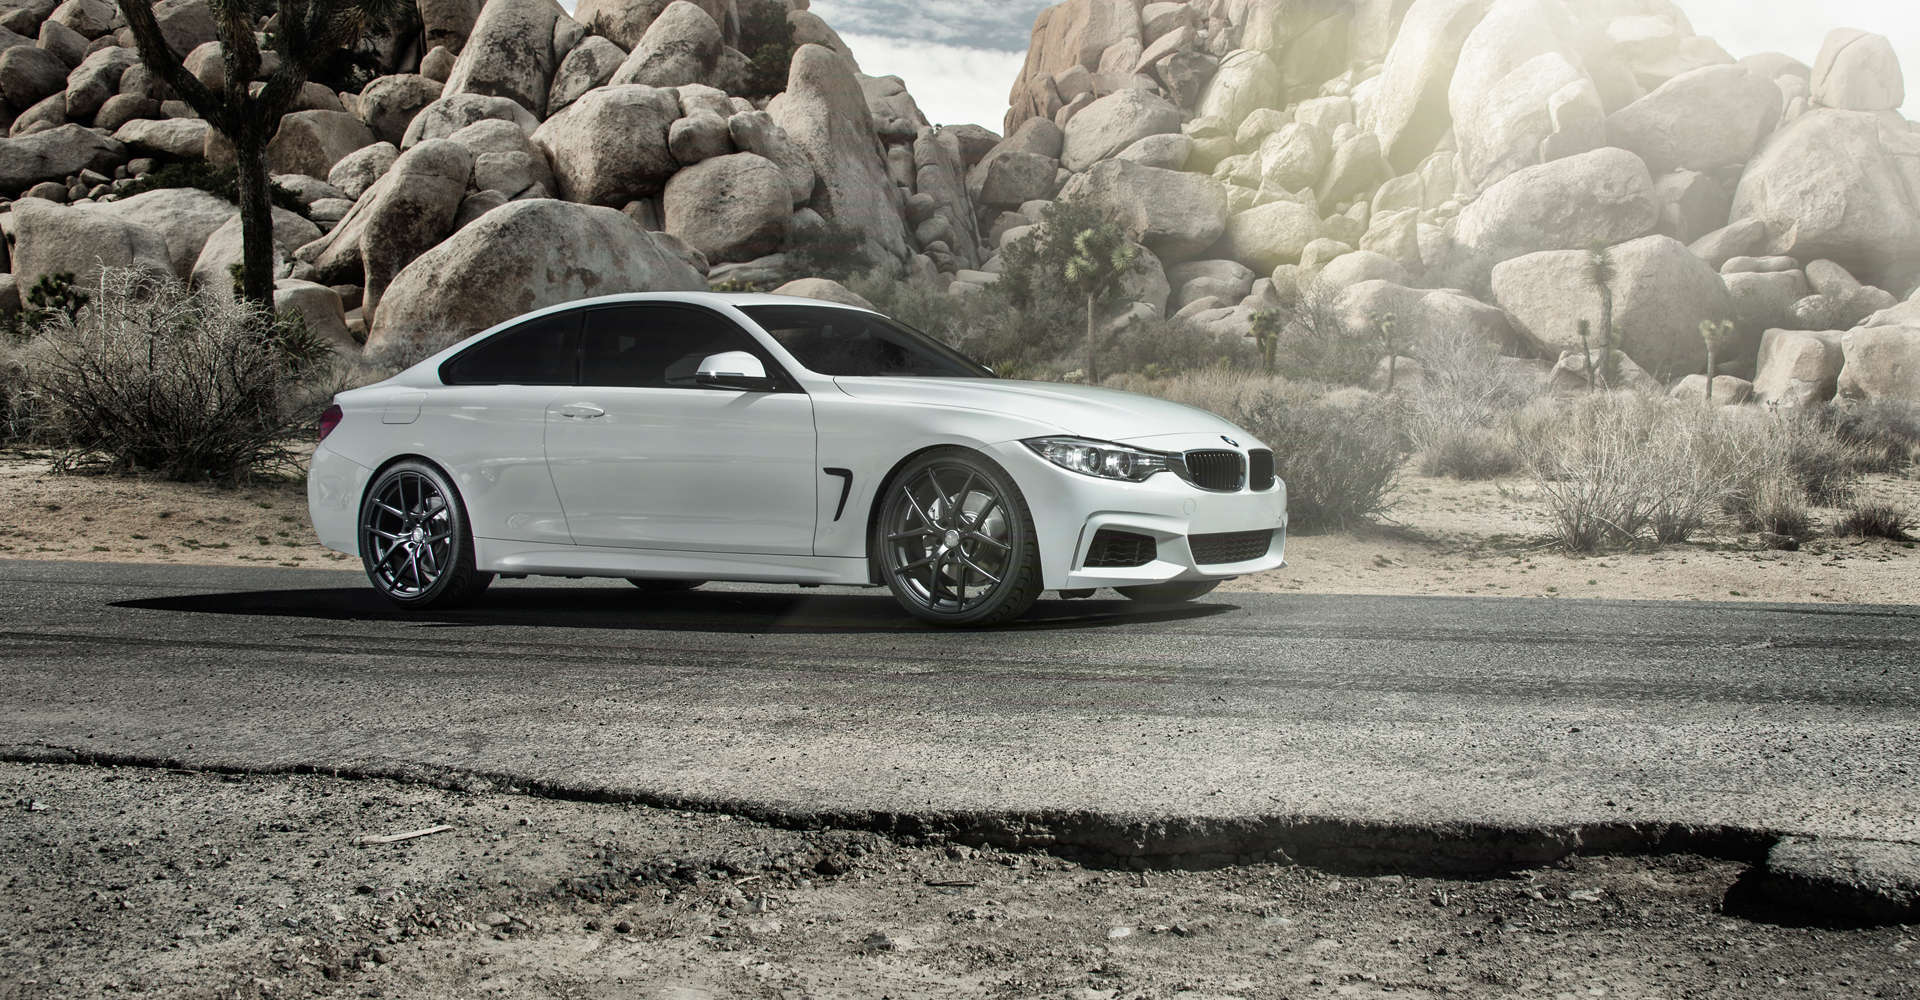 BMW HD Wallpapers 1080p - WallpaperSafari